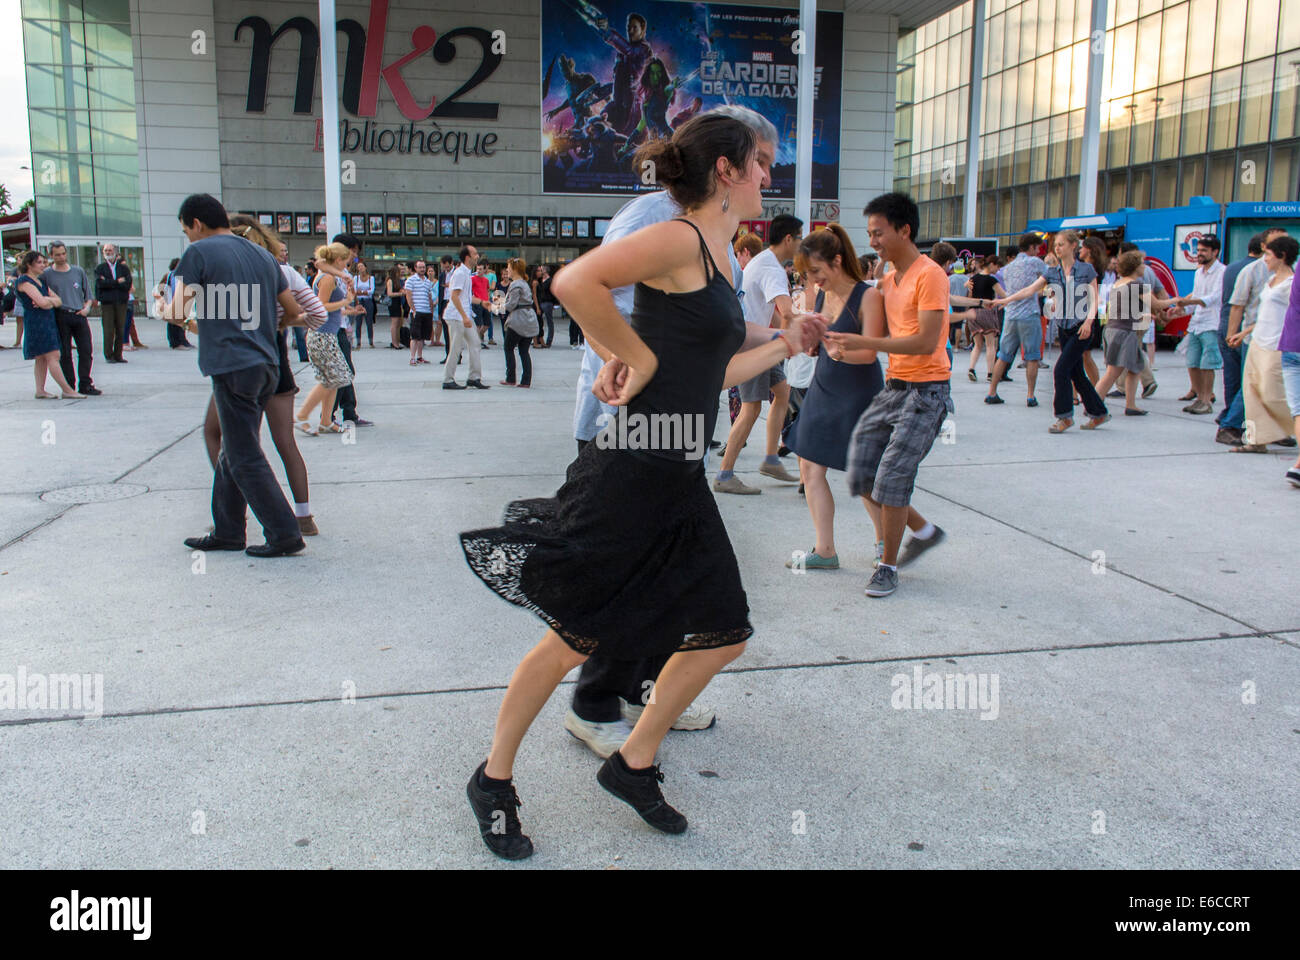 Paris, France, French Couples enjoying Public Events, Swing, Rock n Roll Street Dancing, Bibliotheque Area, adult - Stock Image